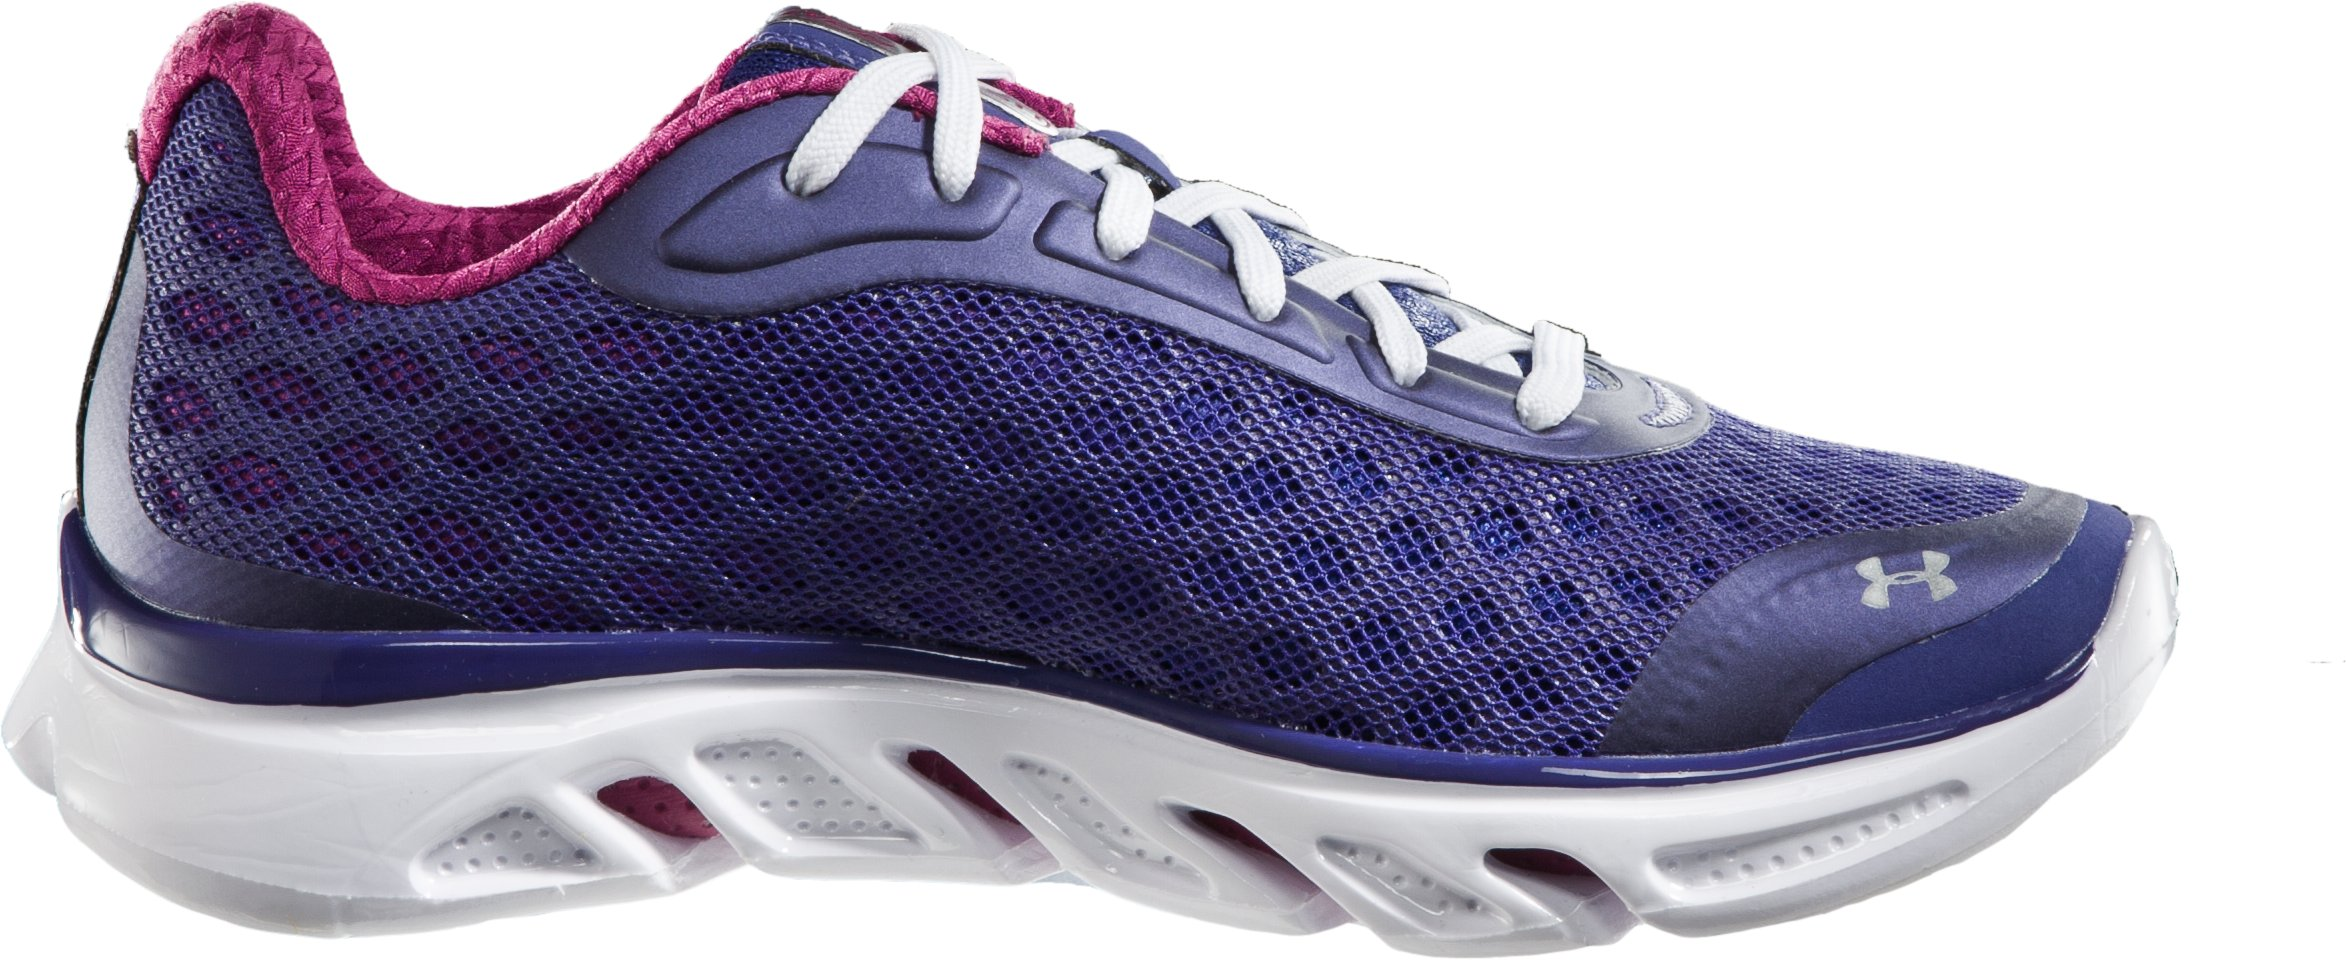 Women's UA Spine RPM Running Shoes, Pluto